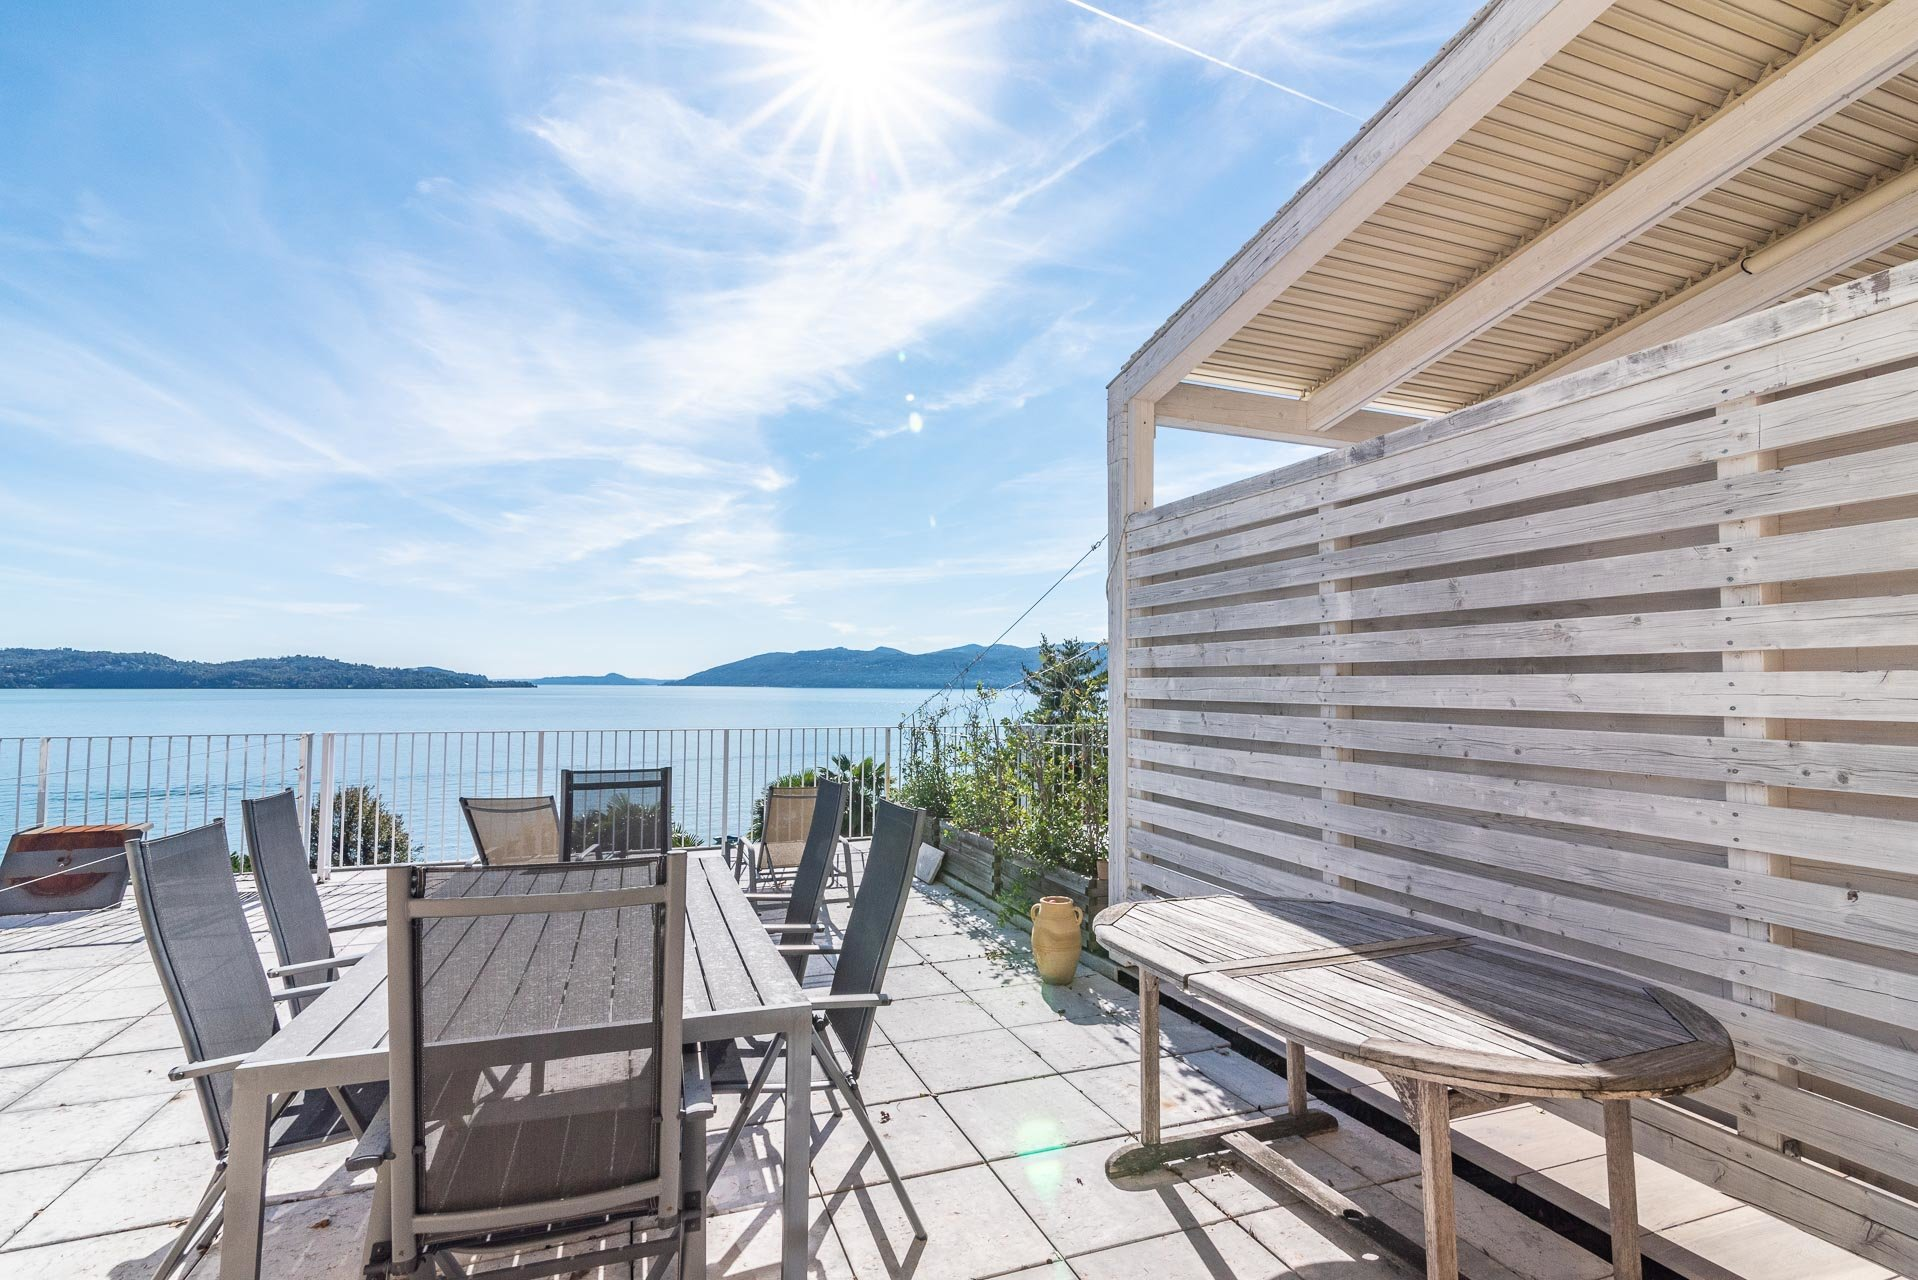 Sale on Lake Maggiore Renovated Loft in Ghiffa